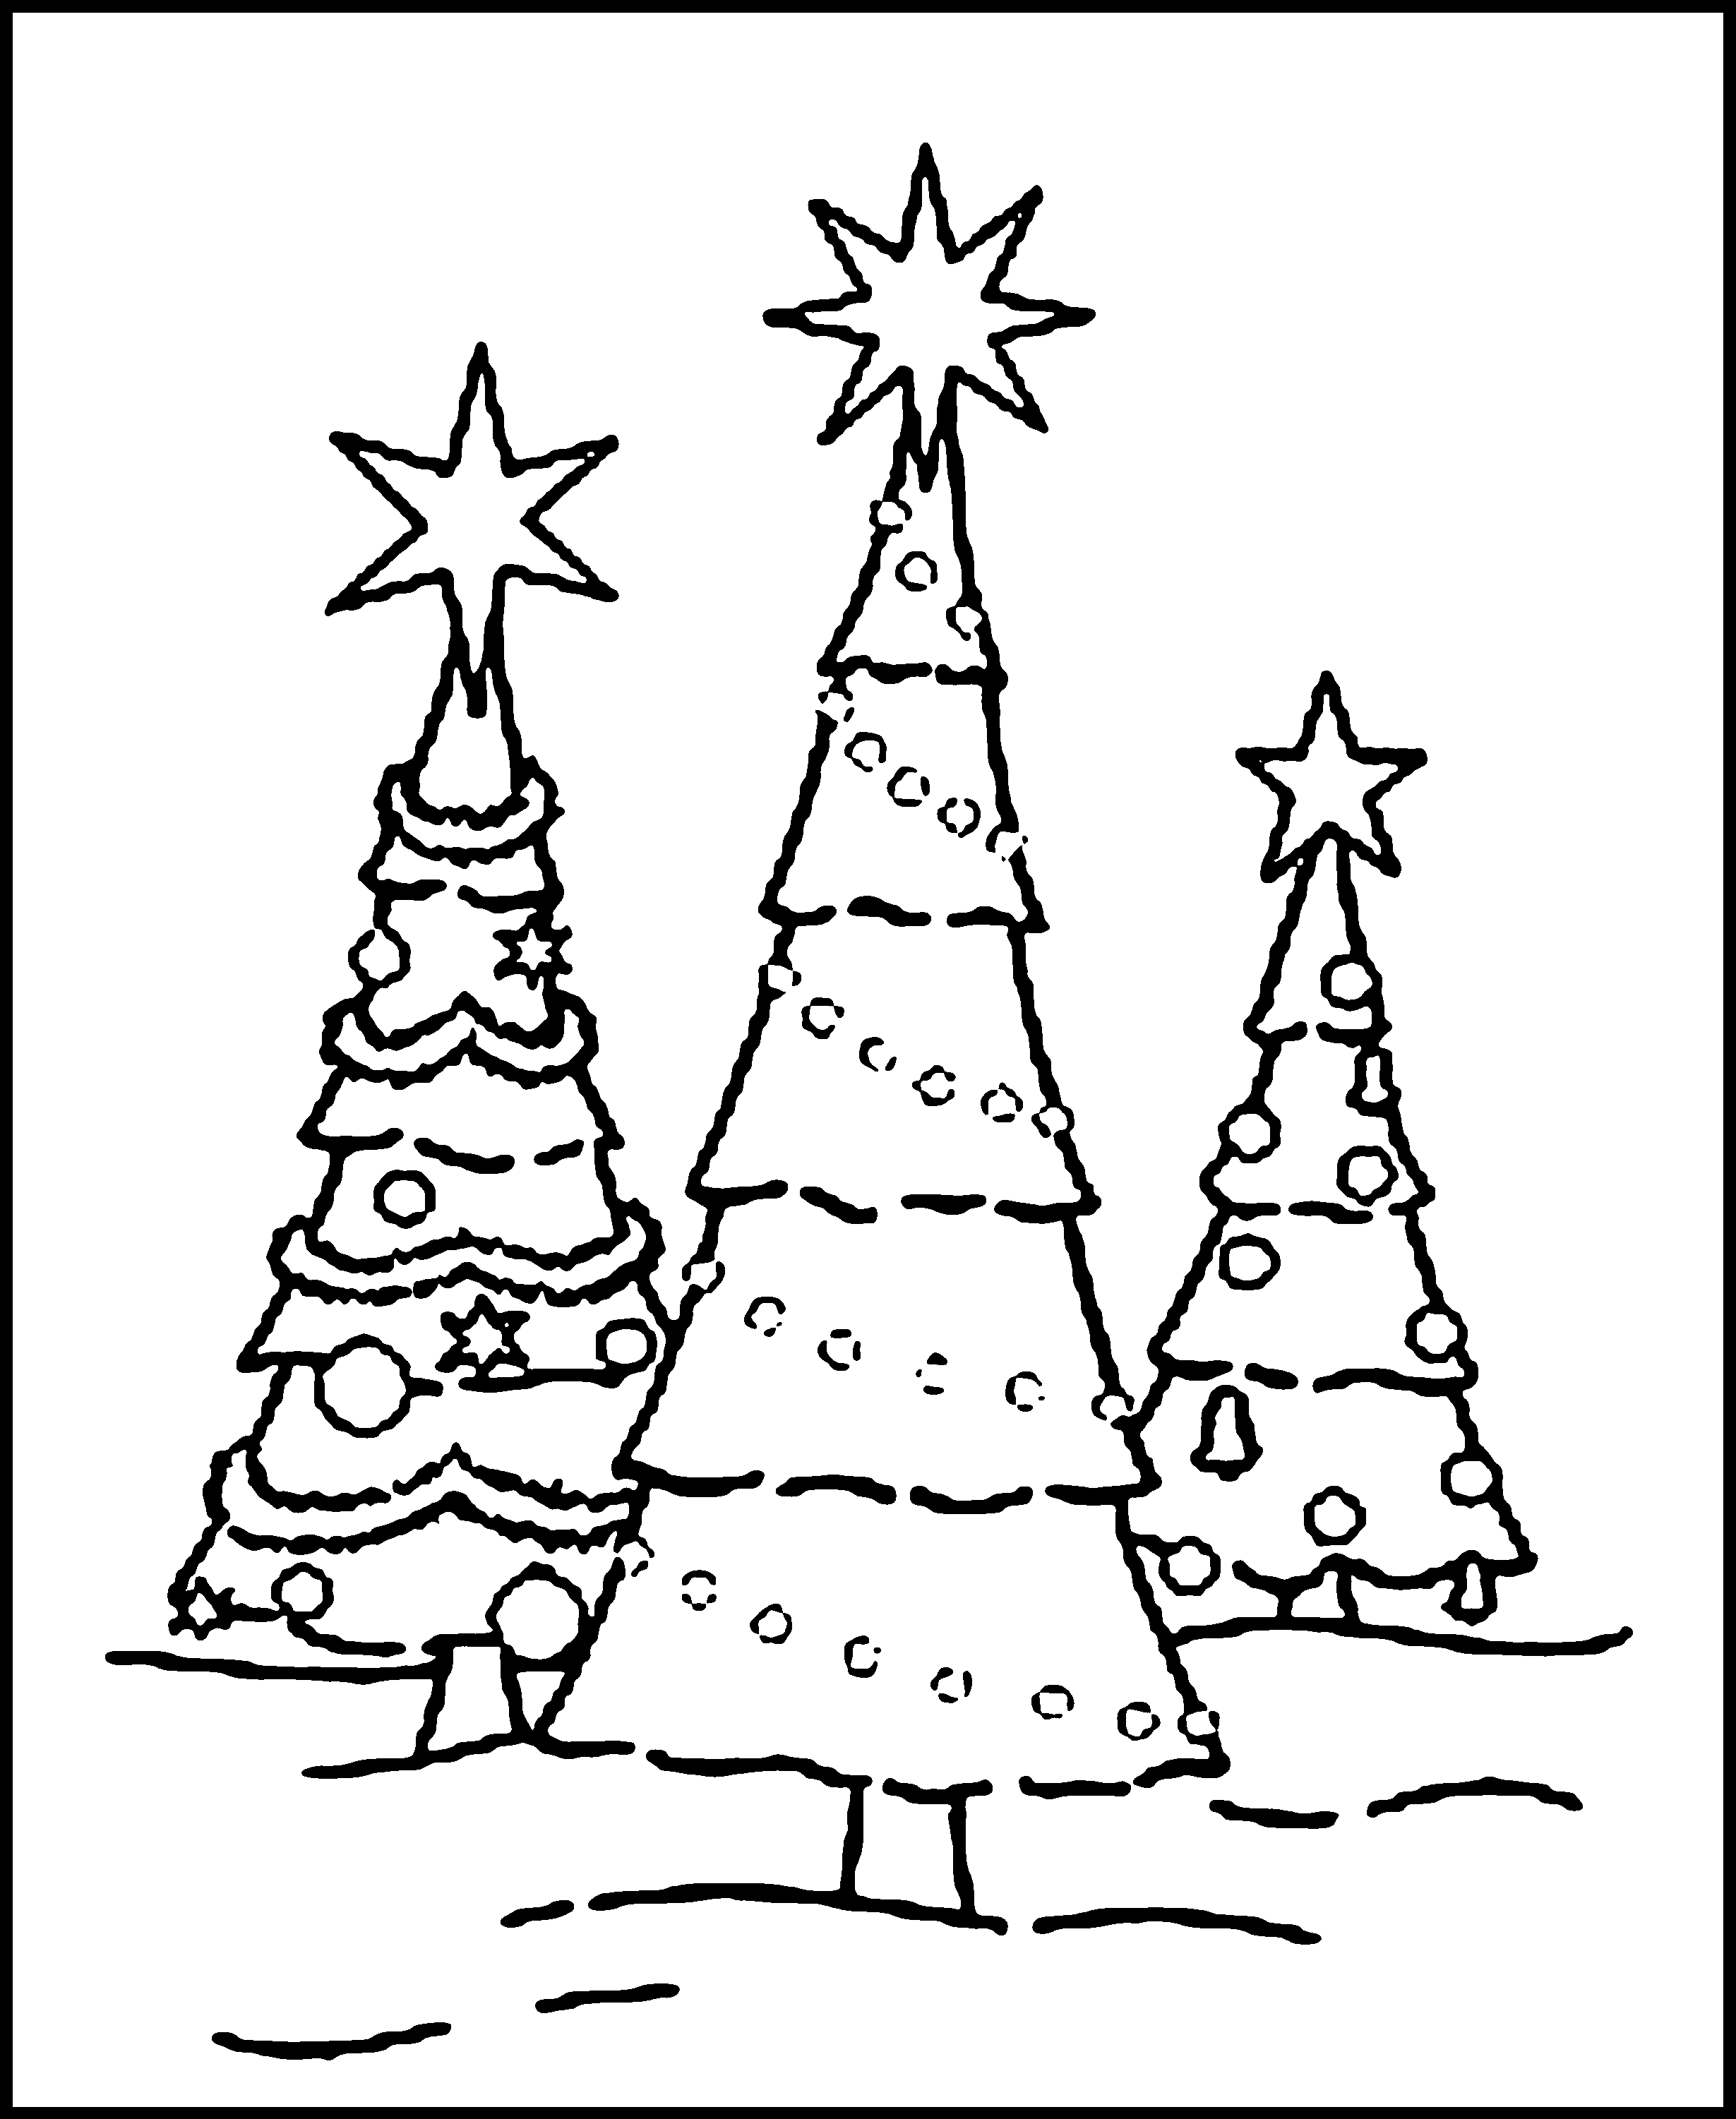 graphic regarding Free Printable Christmas Tree called Totally free Printable Xmas Tree Coloring Web pages For Youngsters